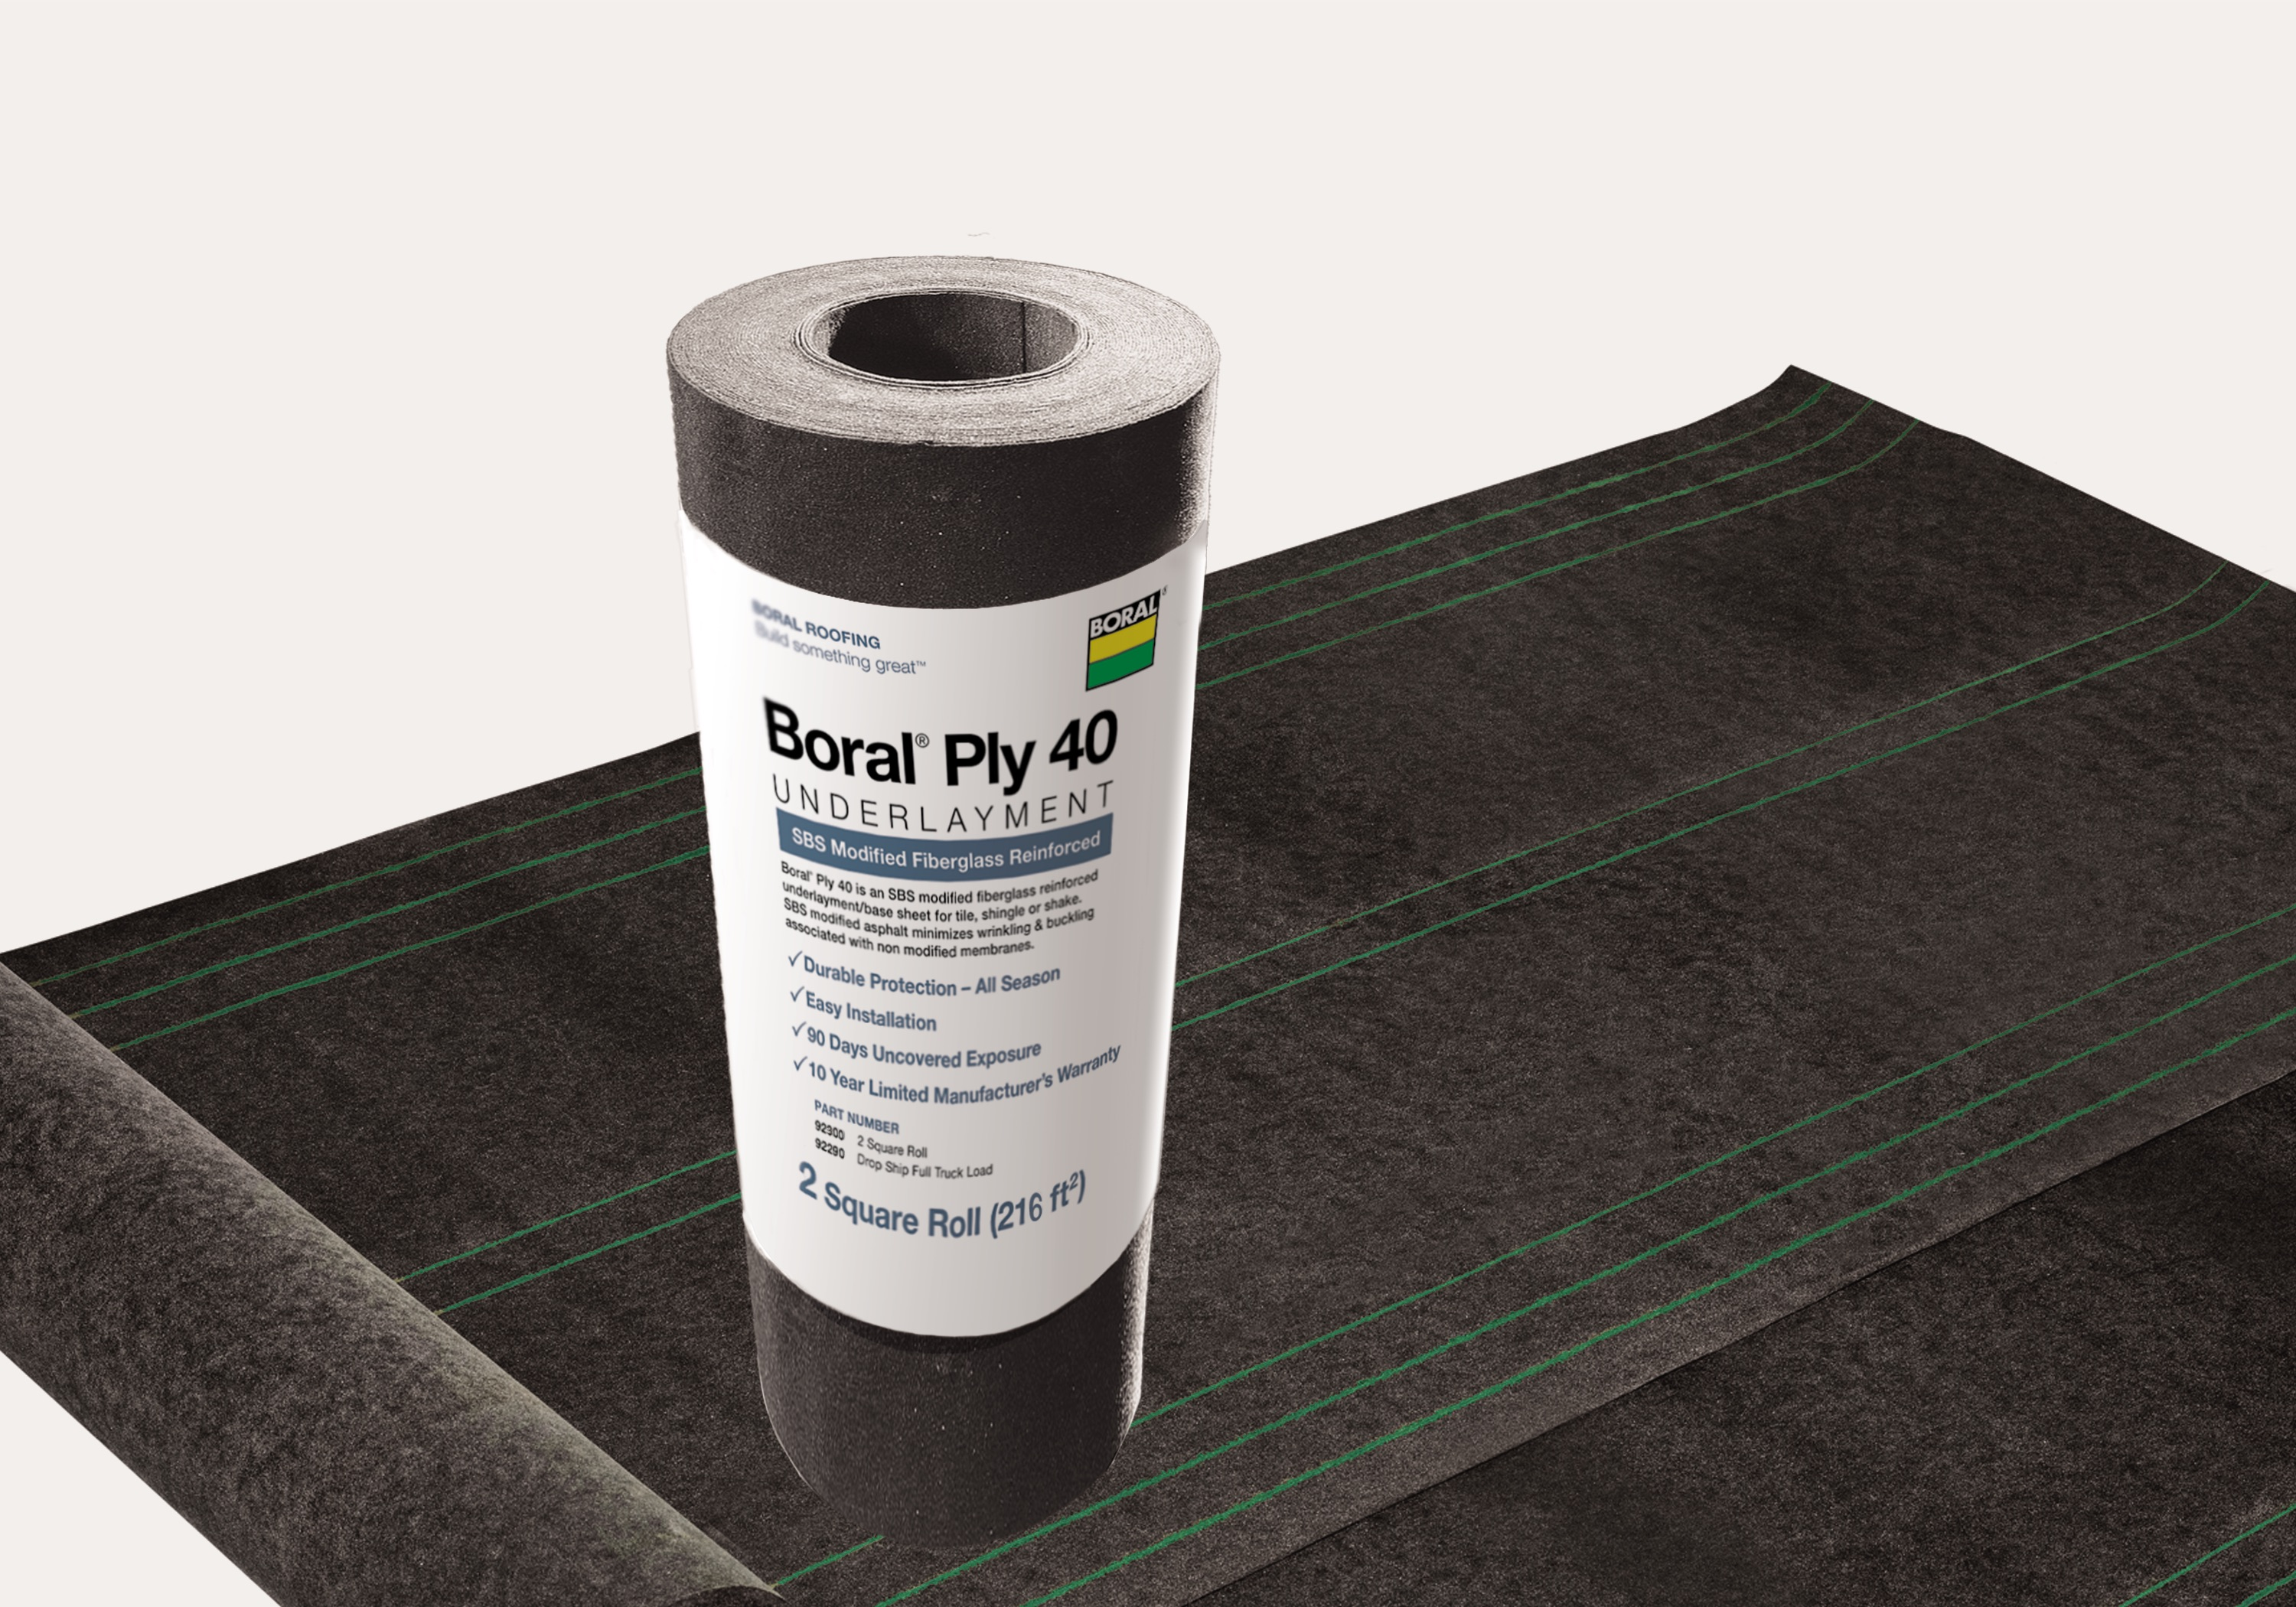 Underlayment Products - Boral